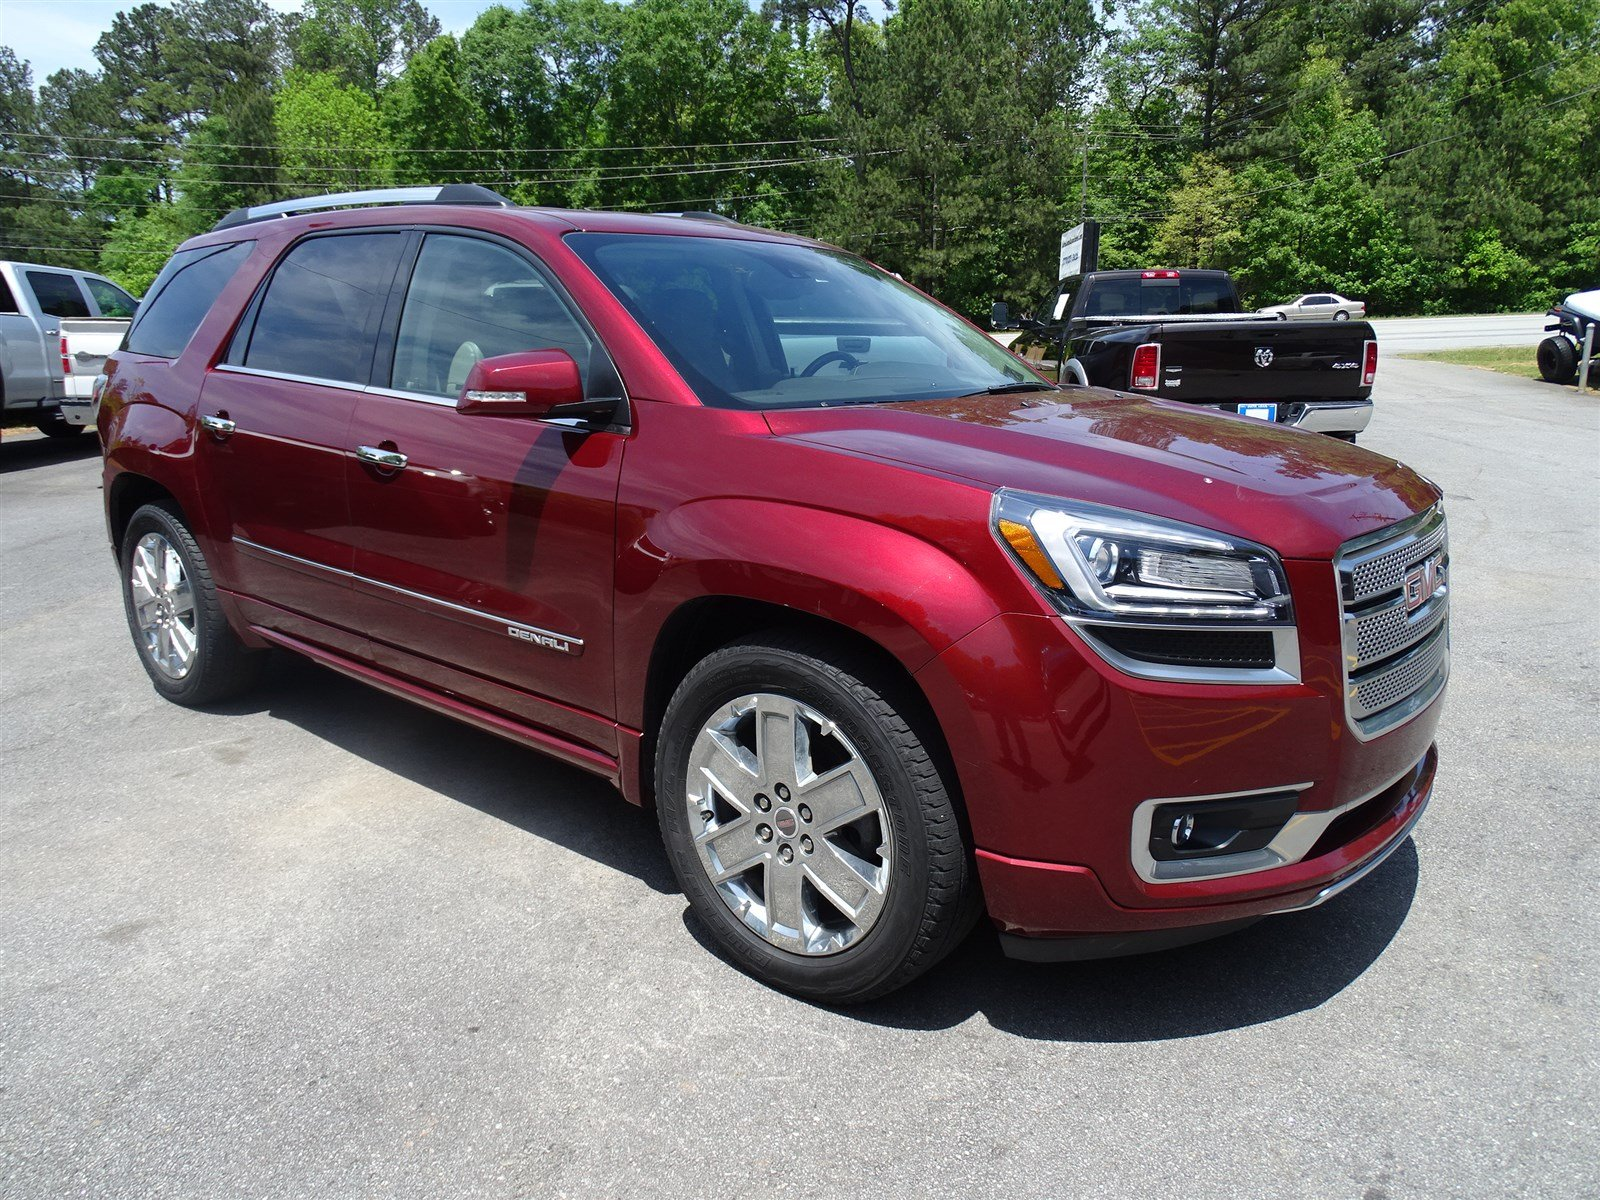 2015 GMC Acadia Denali  Trailer Hitch 2-Position Memory For Drivers Seat Adjuster Mobile Wi-Fi